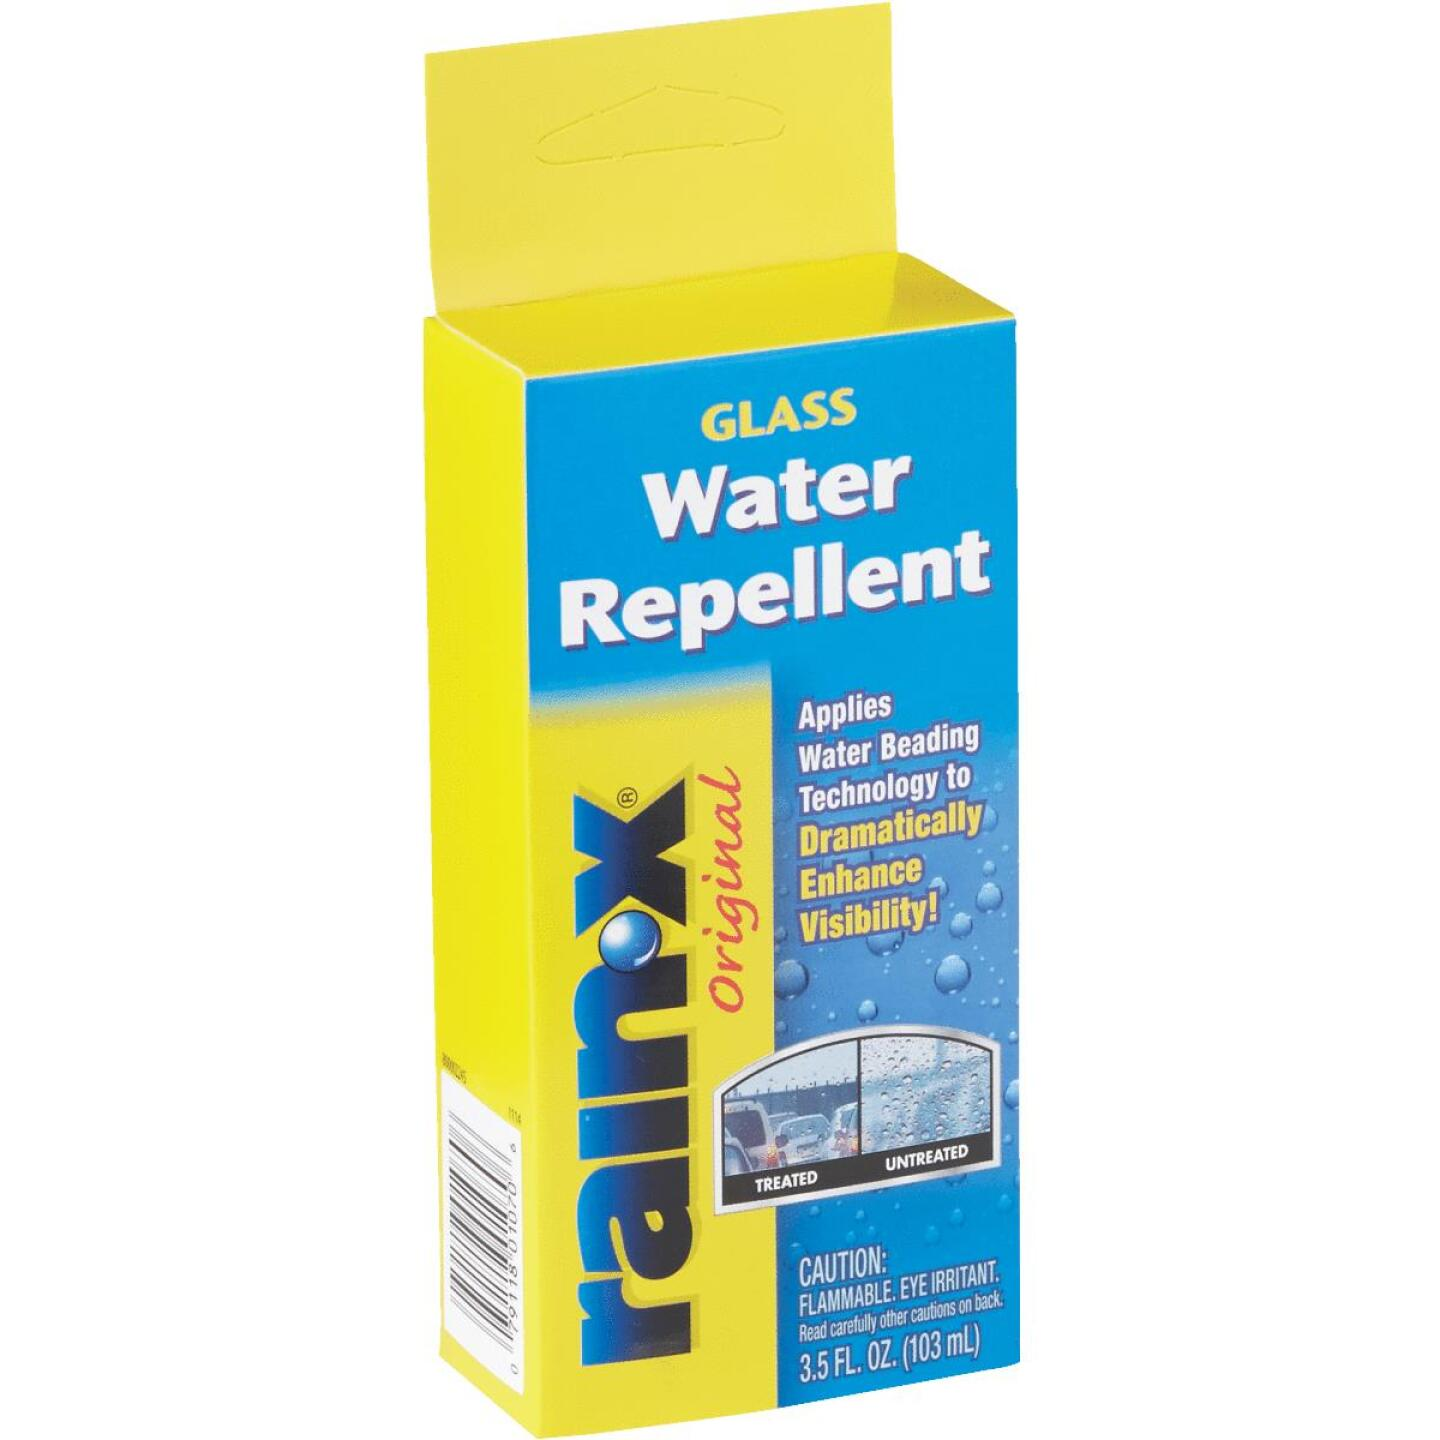 RAIN-X 3.5 Oz. Squeeze Bottle Rain Repellent Image 1